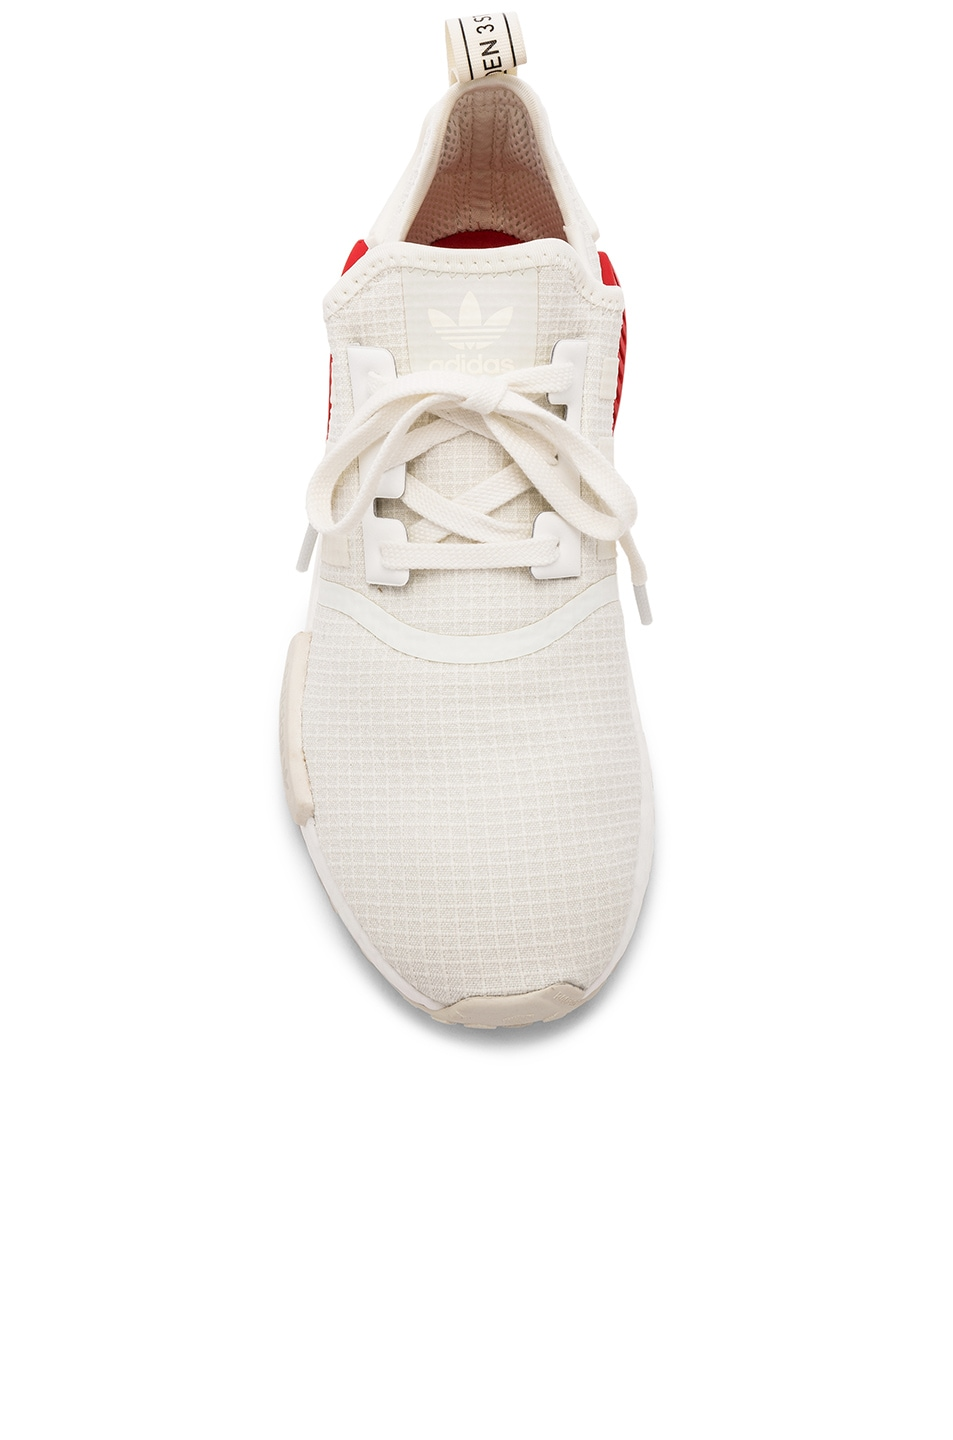 Image 4 of adidas Originals NMD R1 in Off White & Off White & Lush Red